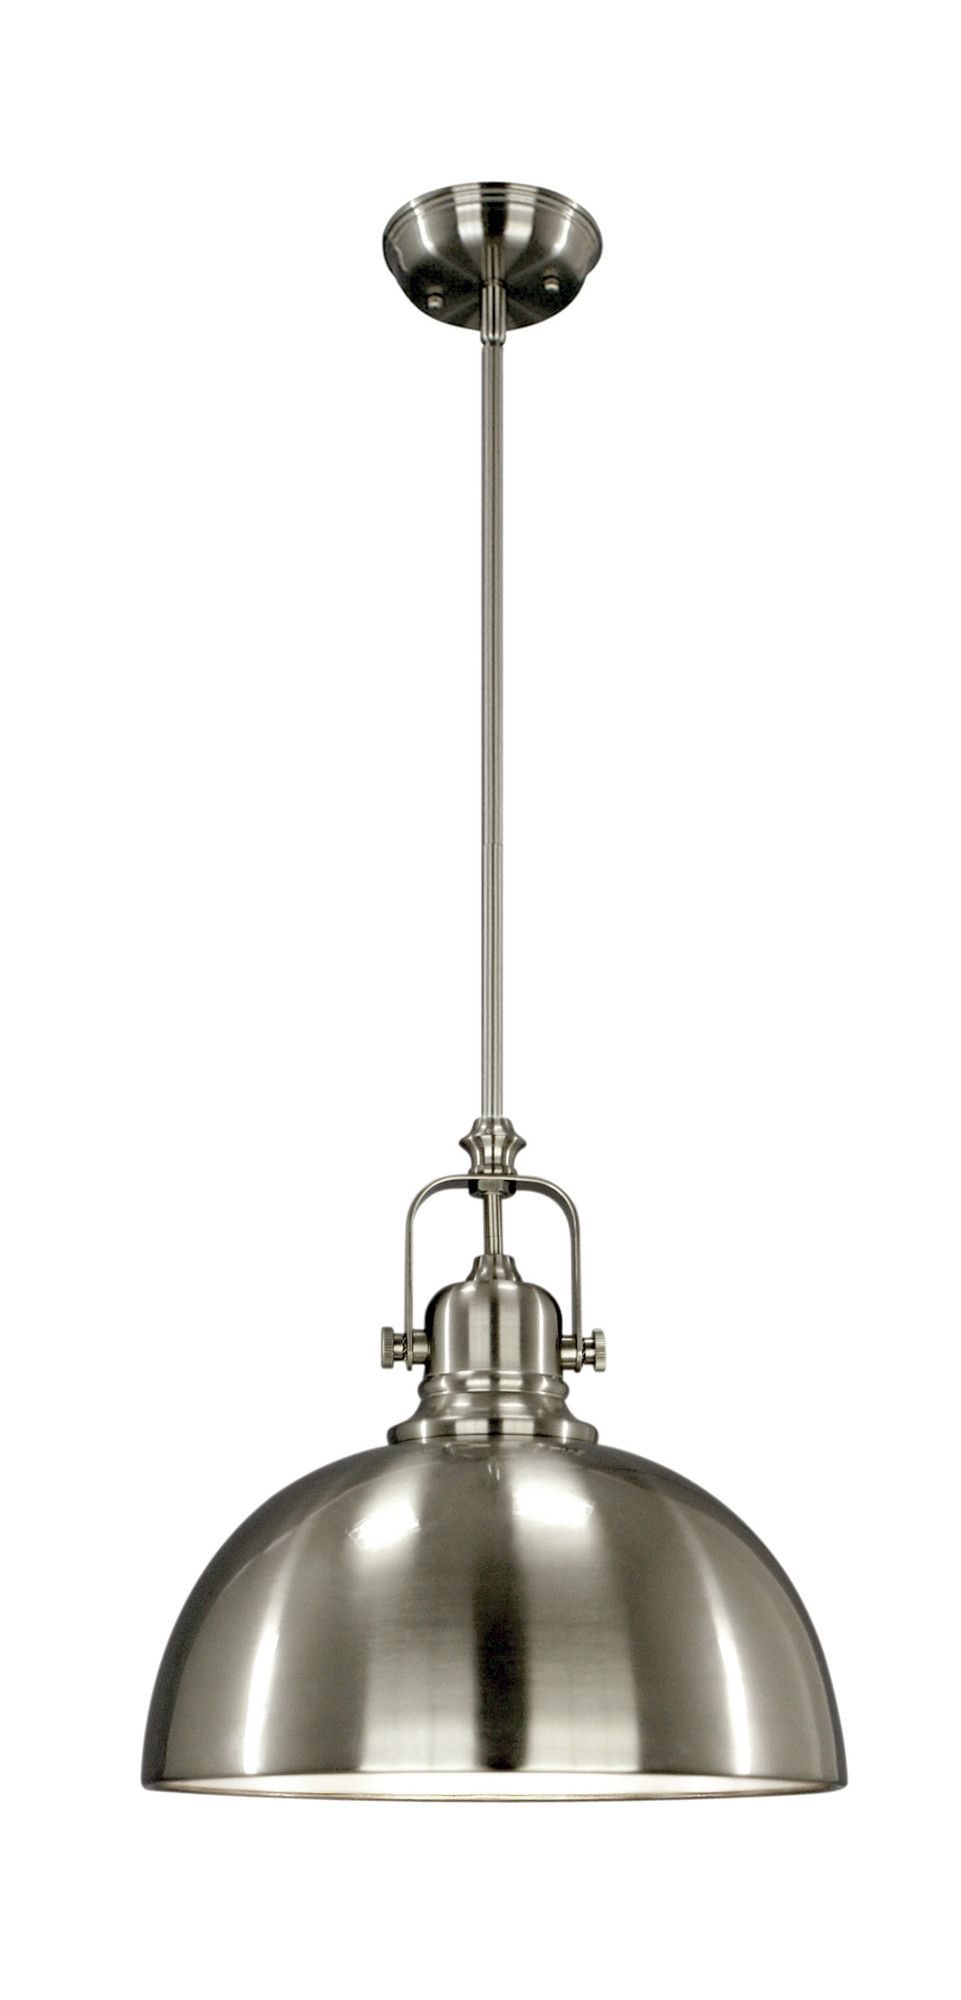 Canarm ipl222b01bn polo 1 light mini pendant with brushed nickel metal shade pendant lighting - Industrial lighting fixtures for kitchen ...